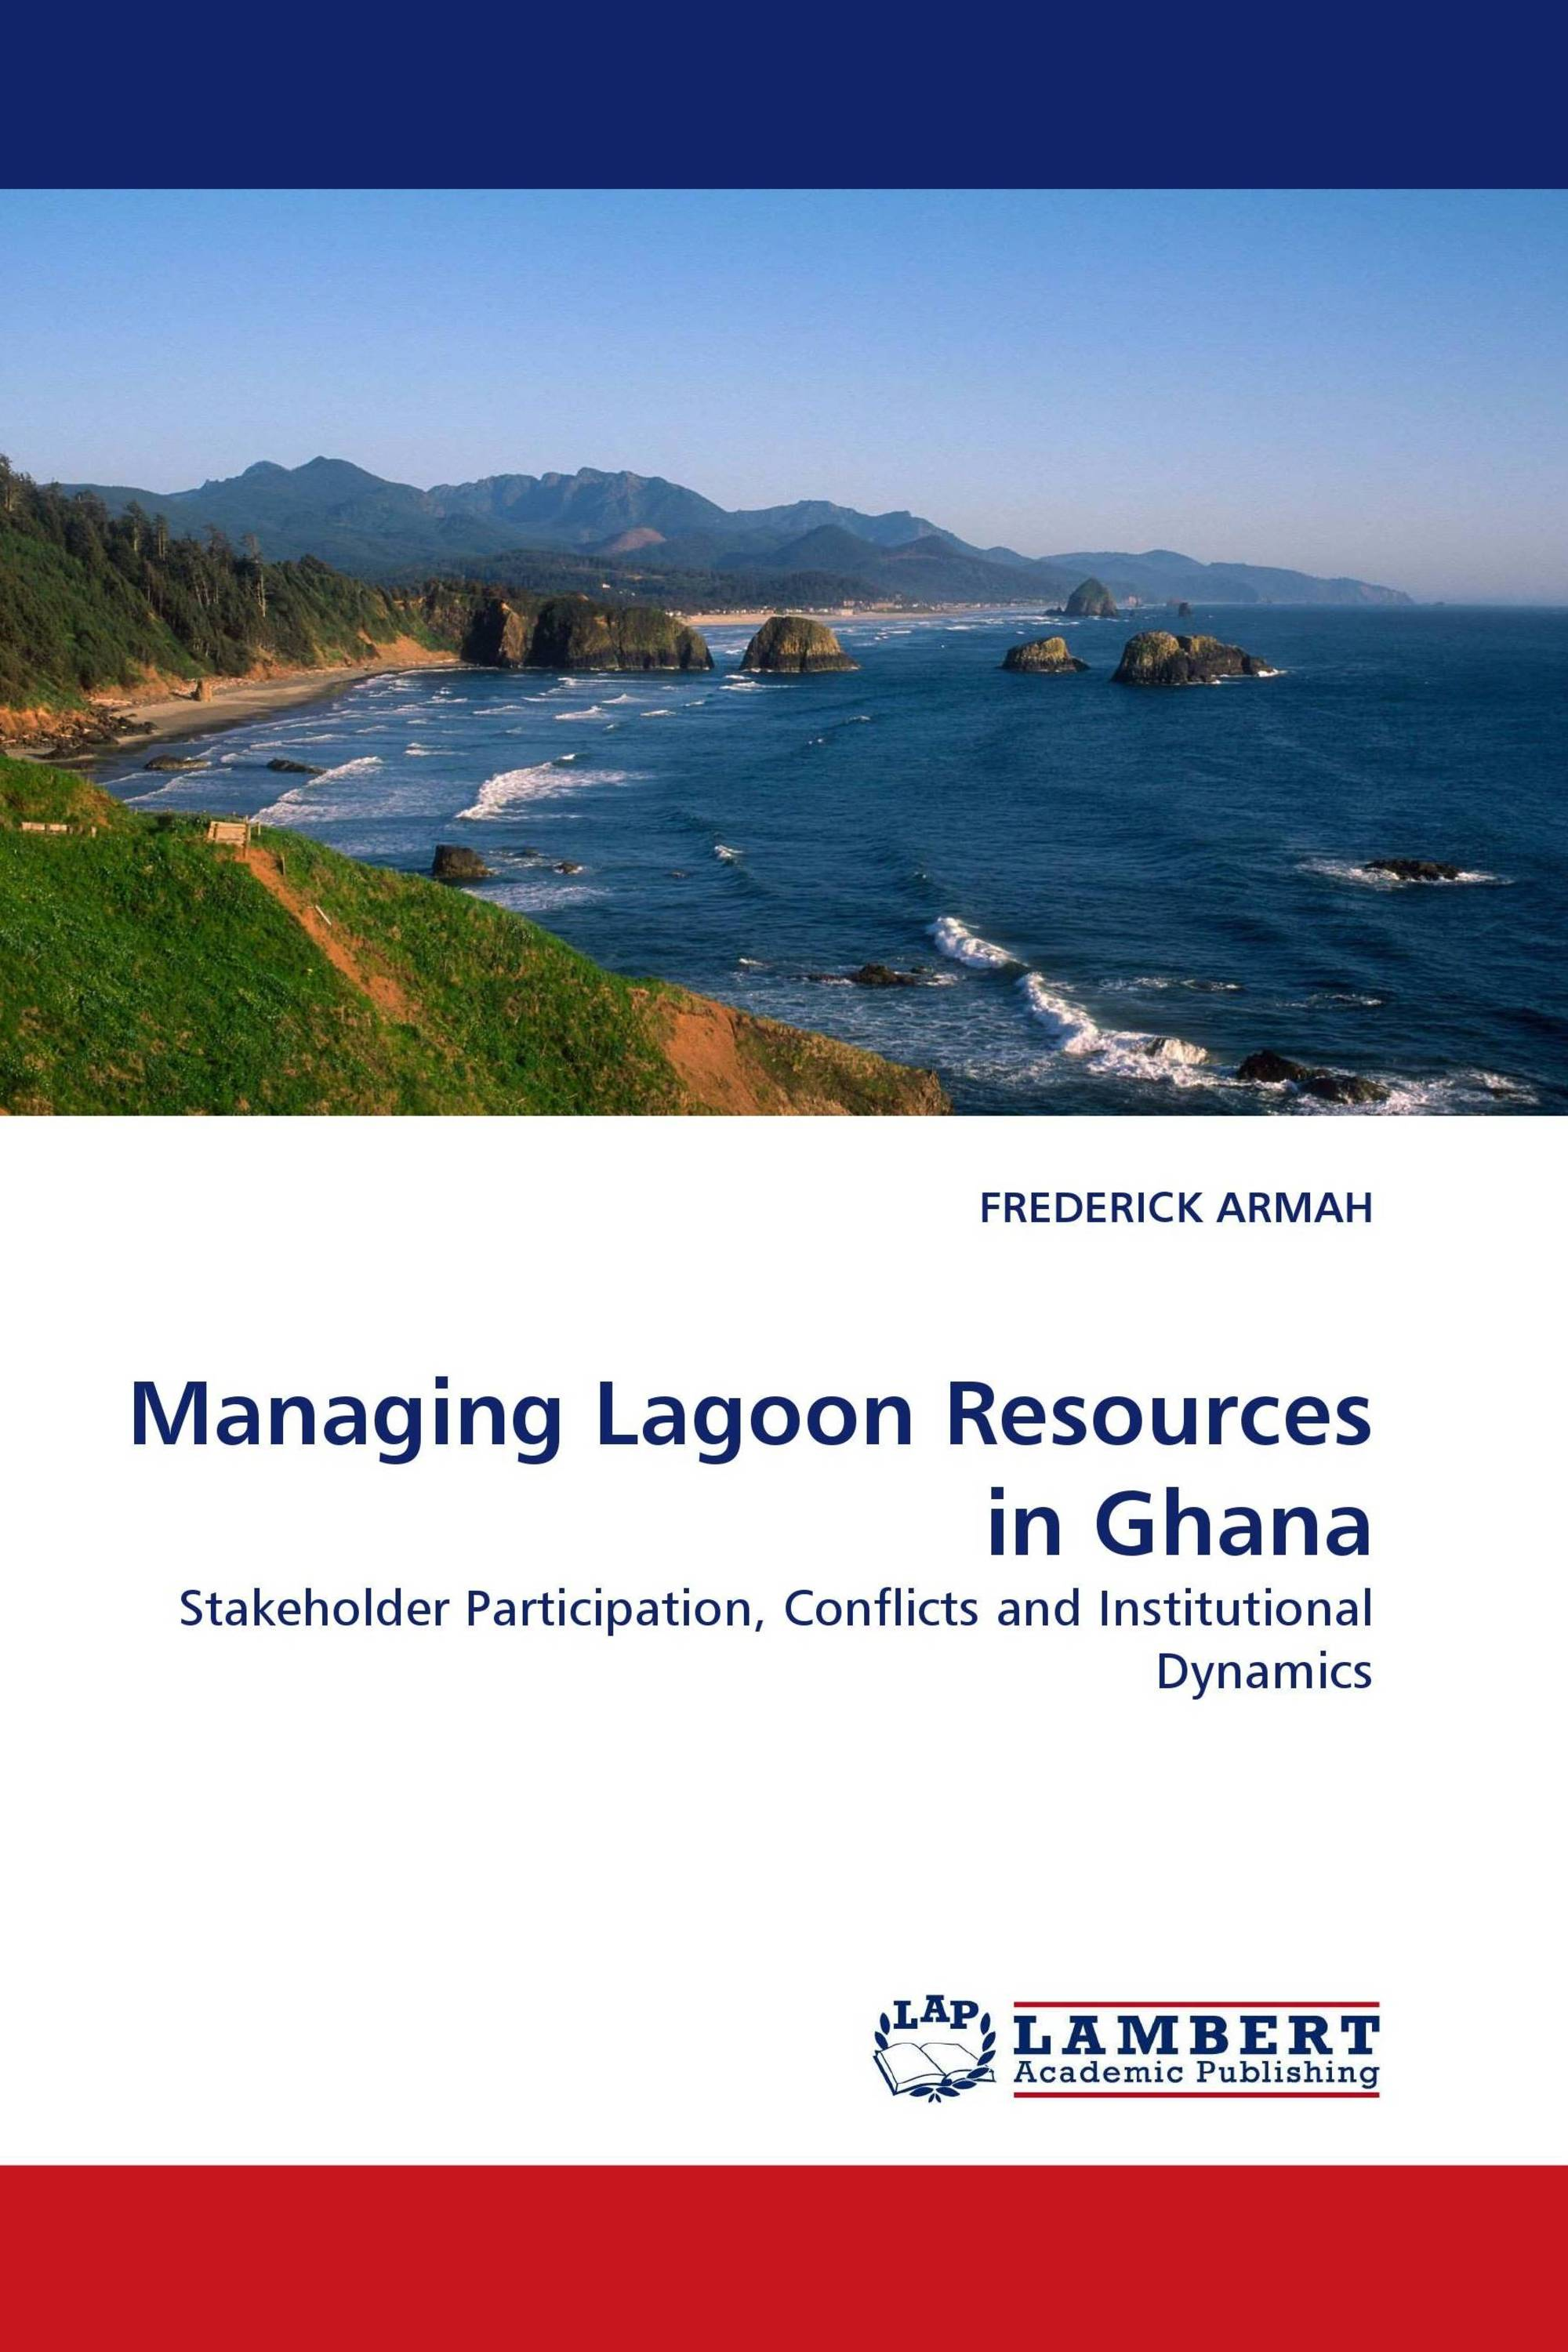 Managing Lagoon Resources in Ghana